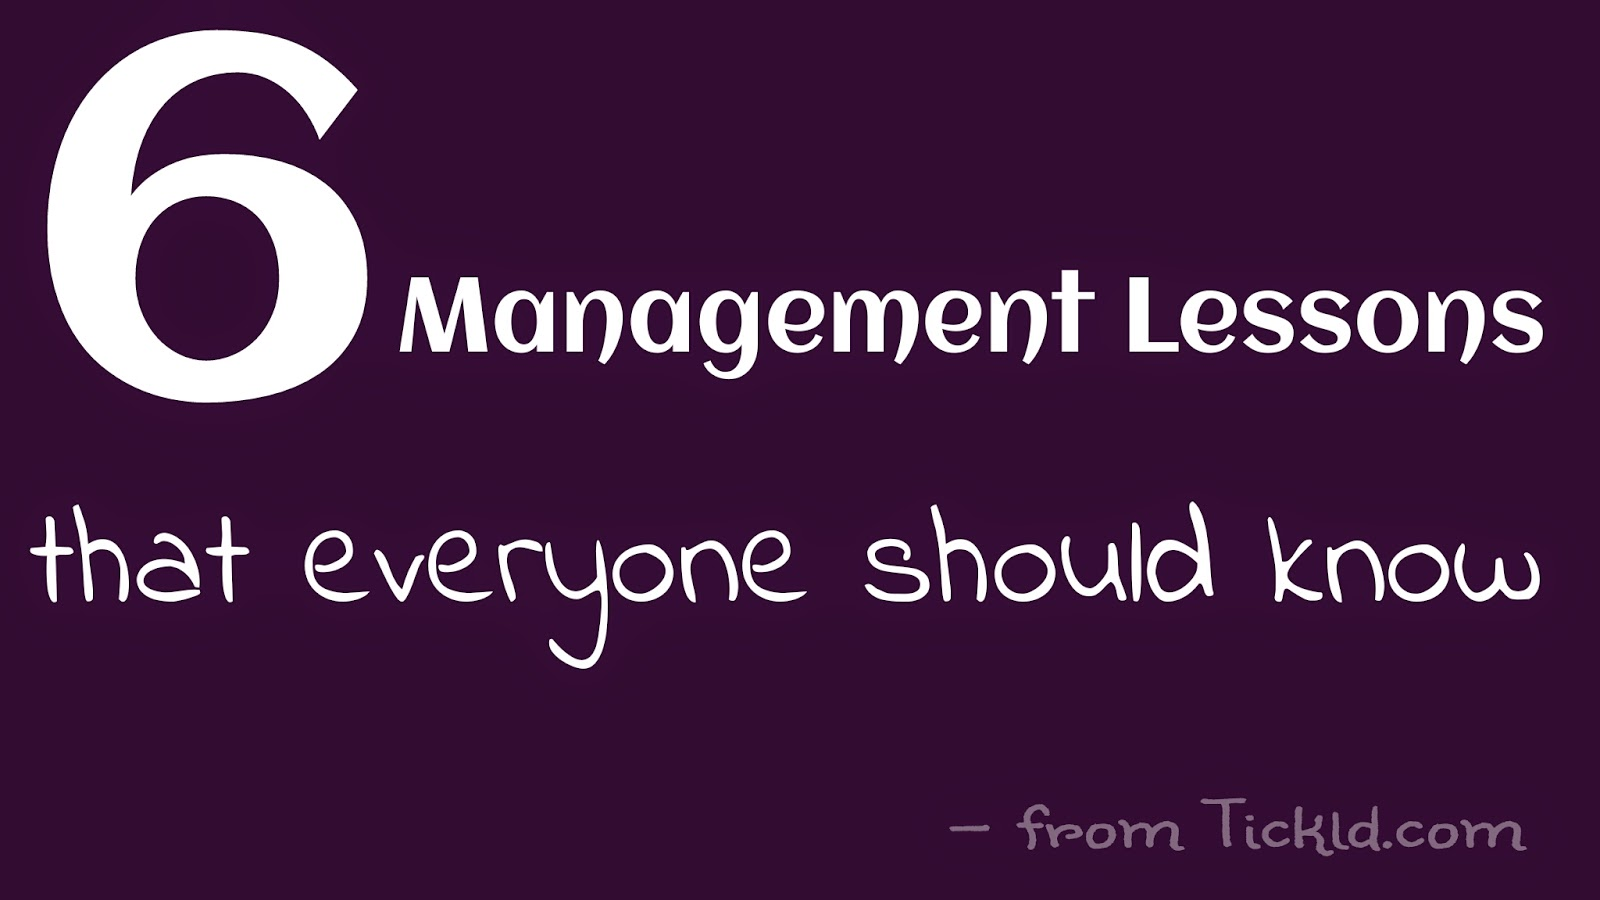 6 Management Lessons That Everyone Should Know. #2 Is Priceless